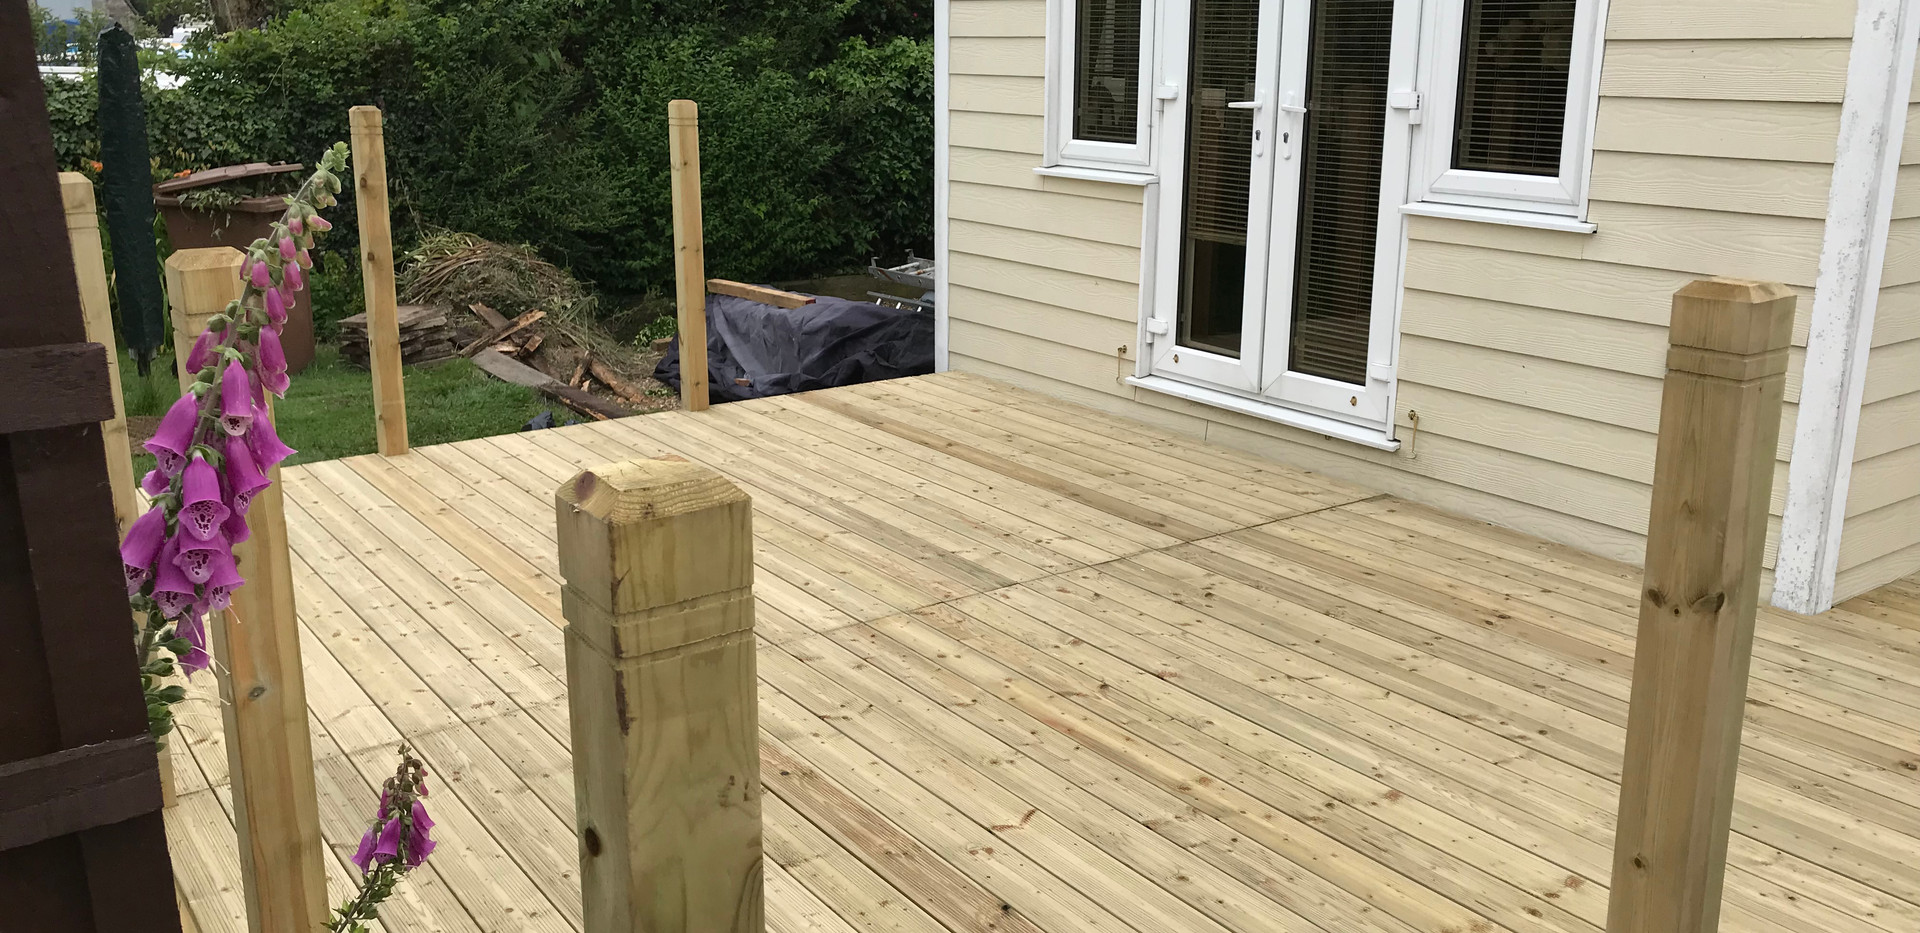 Riverside decking - after